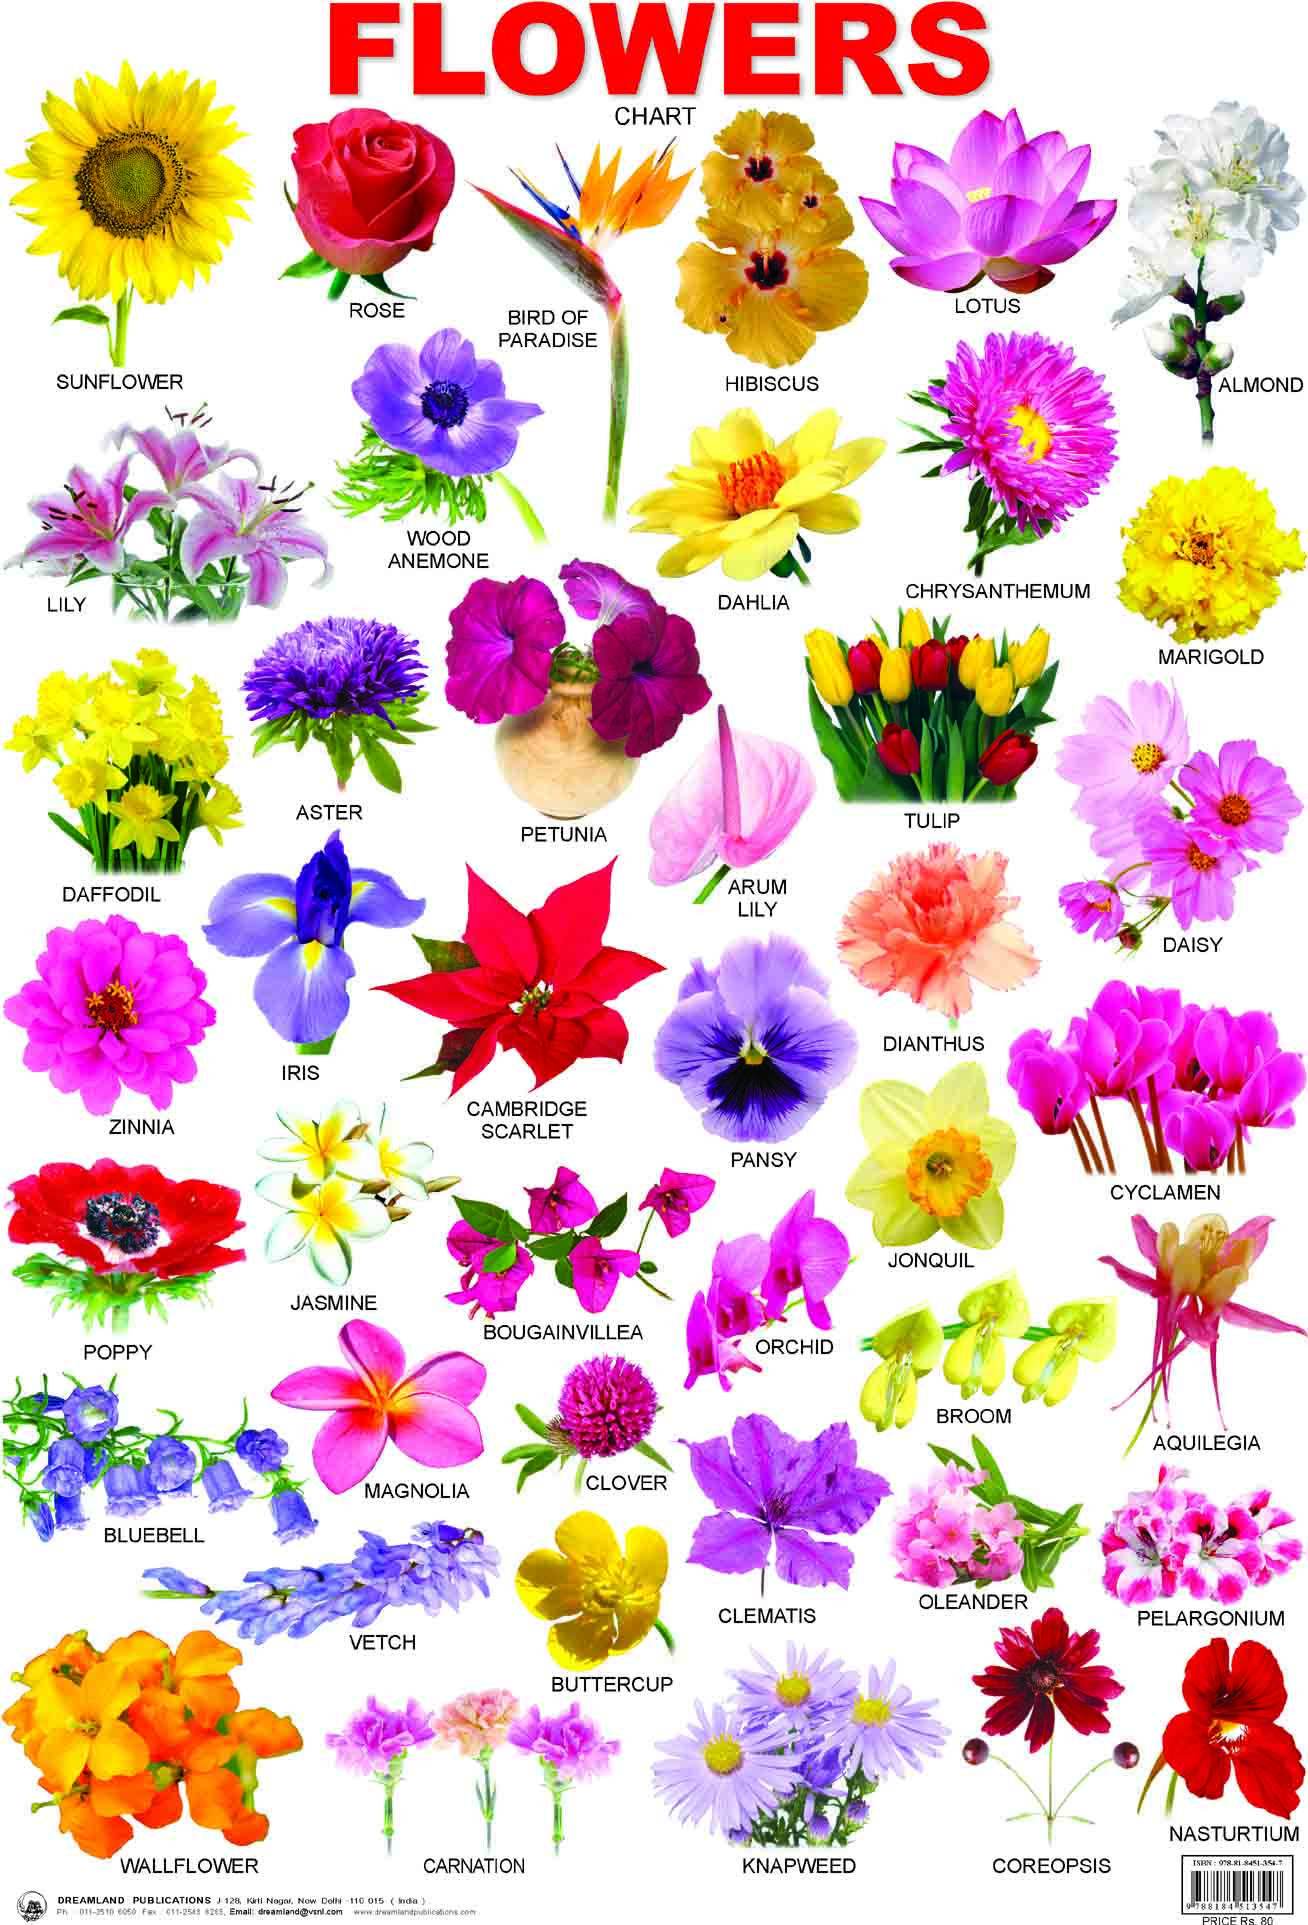 Perfect Flowers List In India And View In 2020 Indian Flower Names Flower Images With Name List Of Flowers